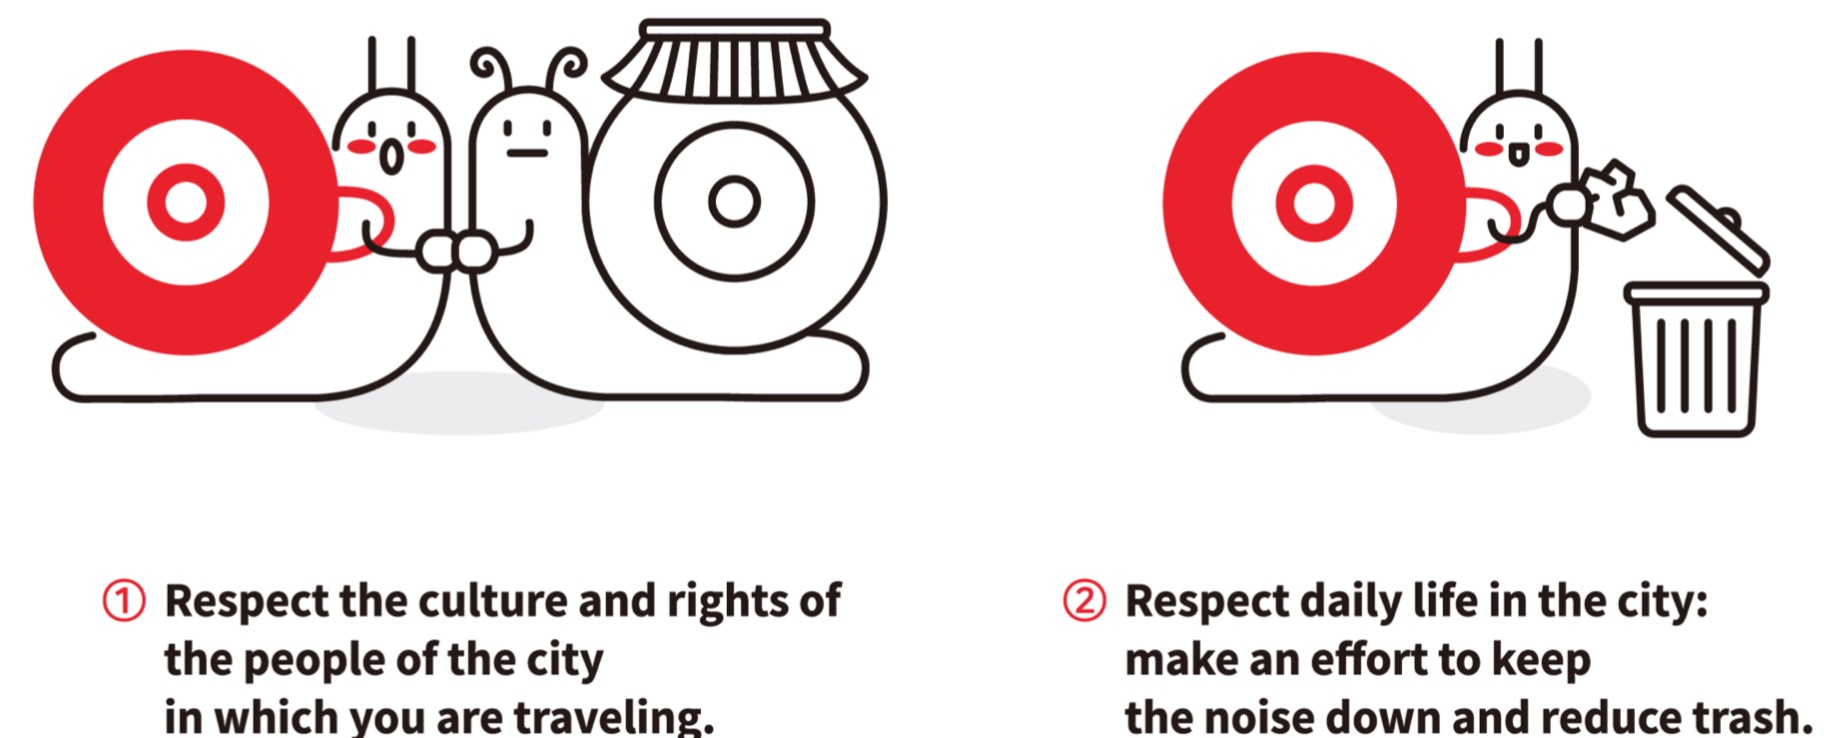 Fair travel campaign image with two snails